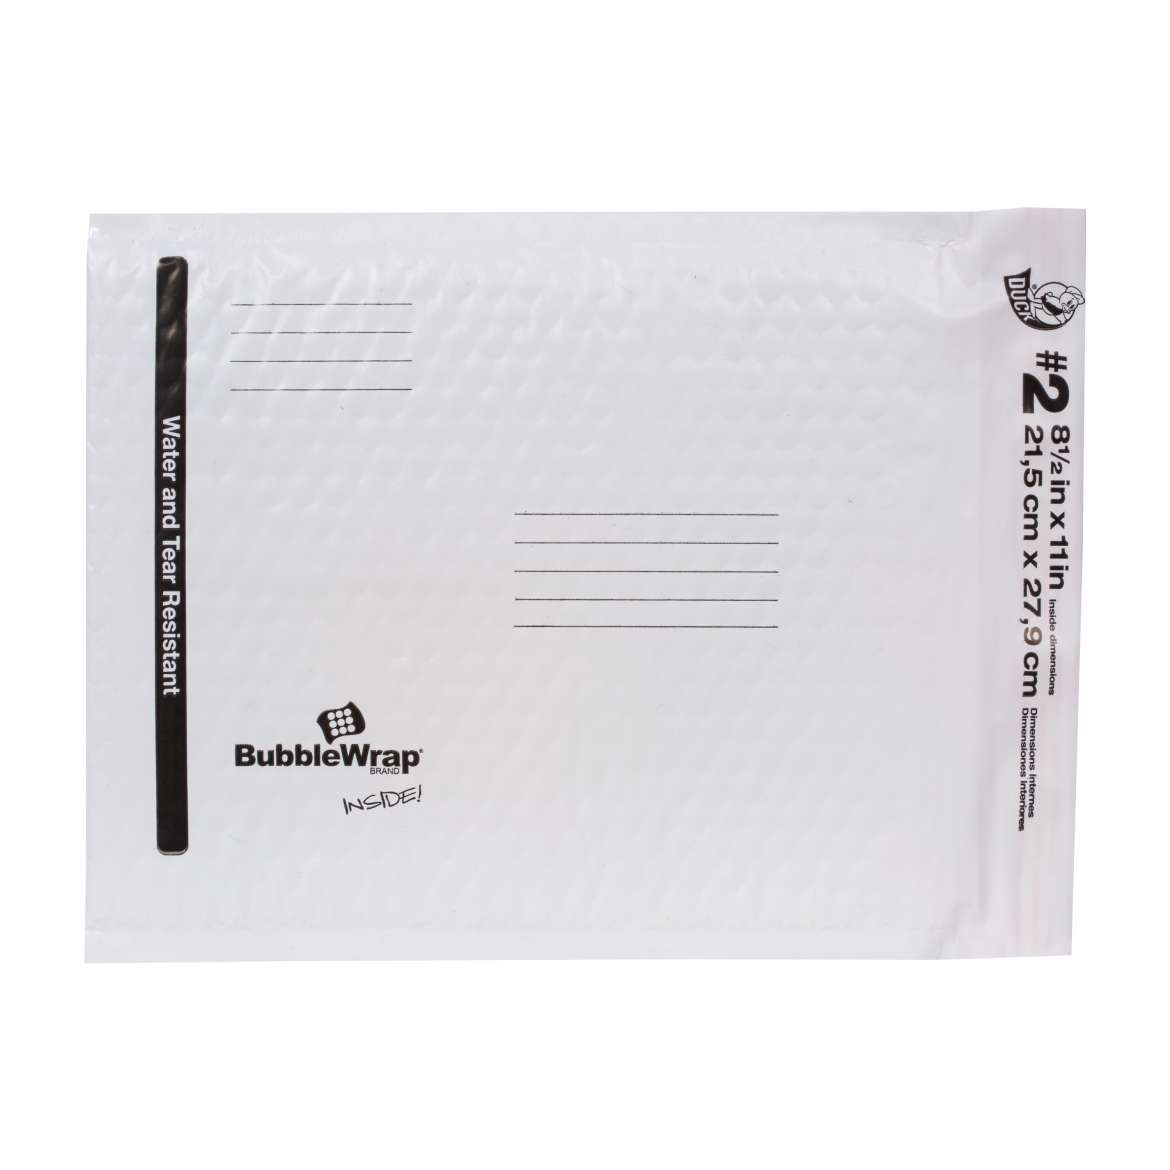 Bubble Wrap® Cushioned Poly Envelope - White, 8.5 in. x 11 in. Image